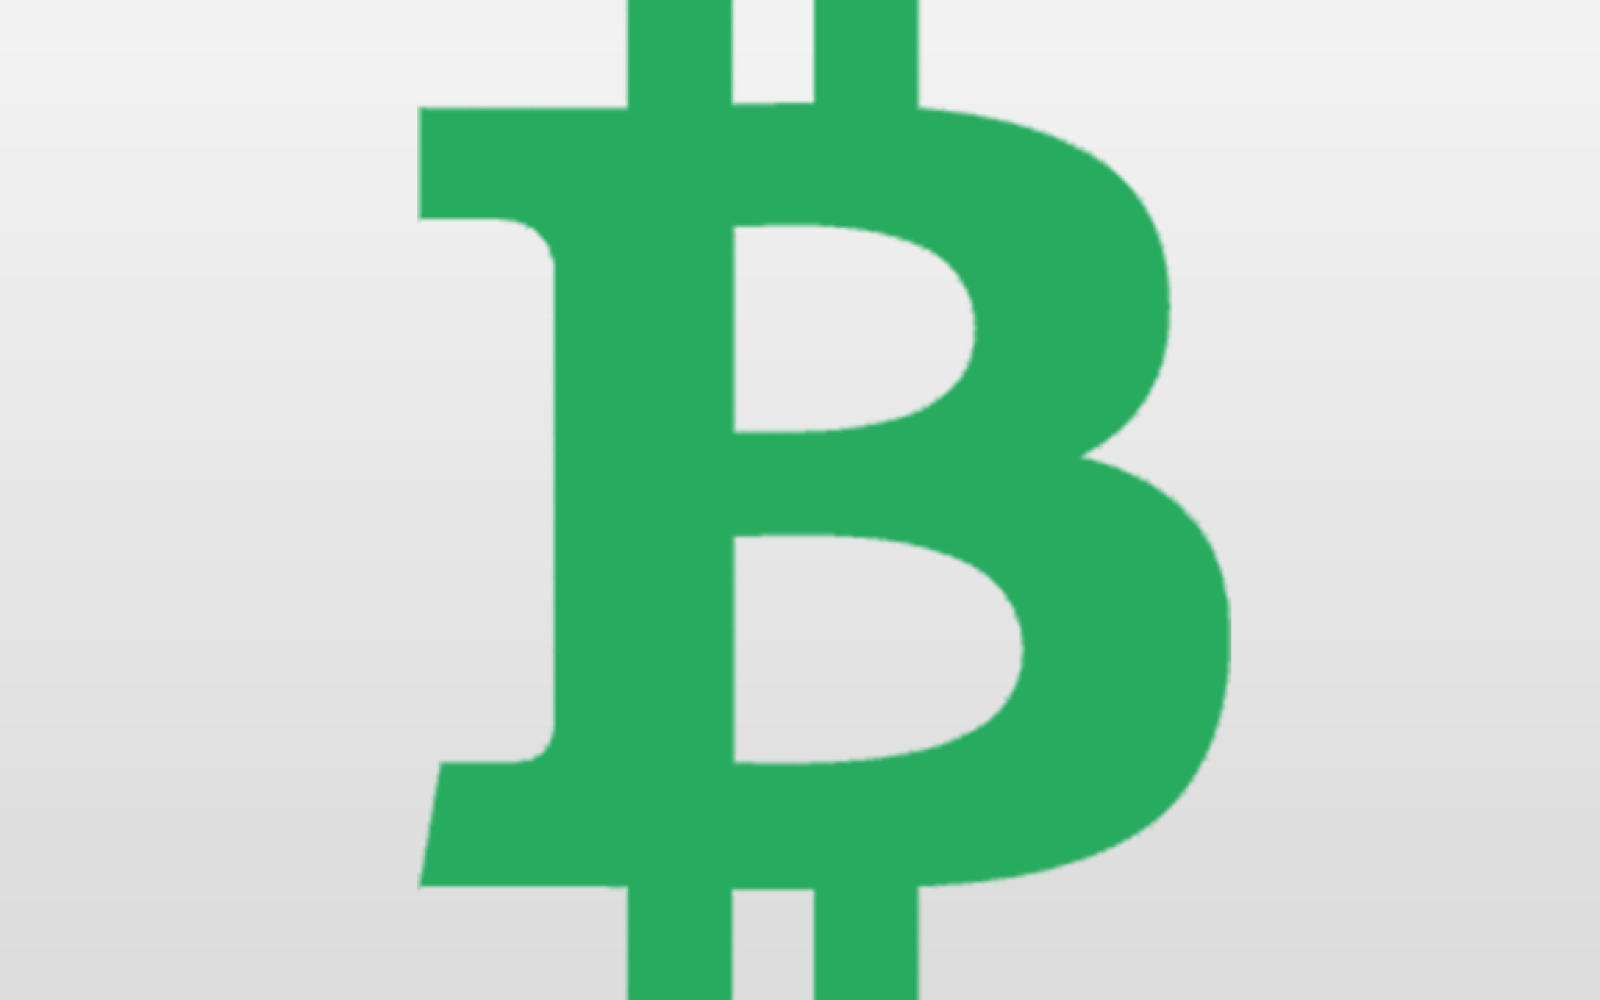 Bitcoin Wallet Apps Returning To The App Store After Apple Relaxes